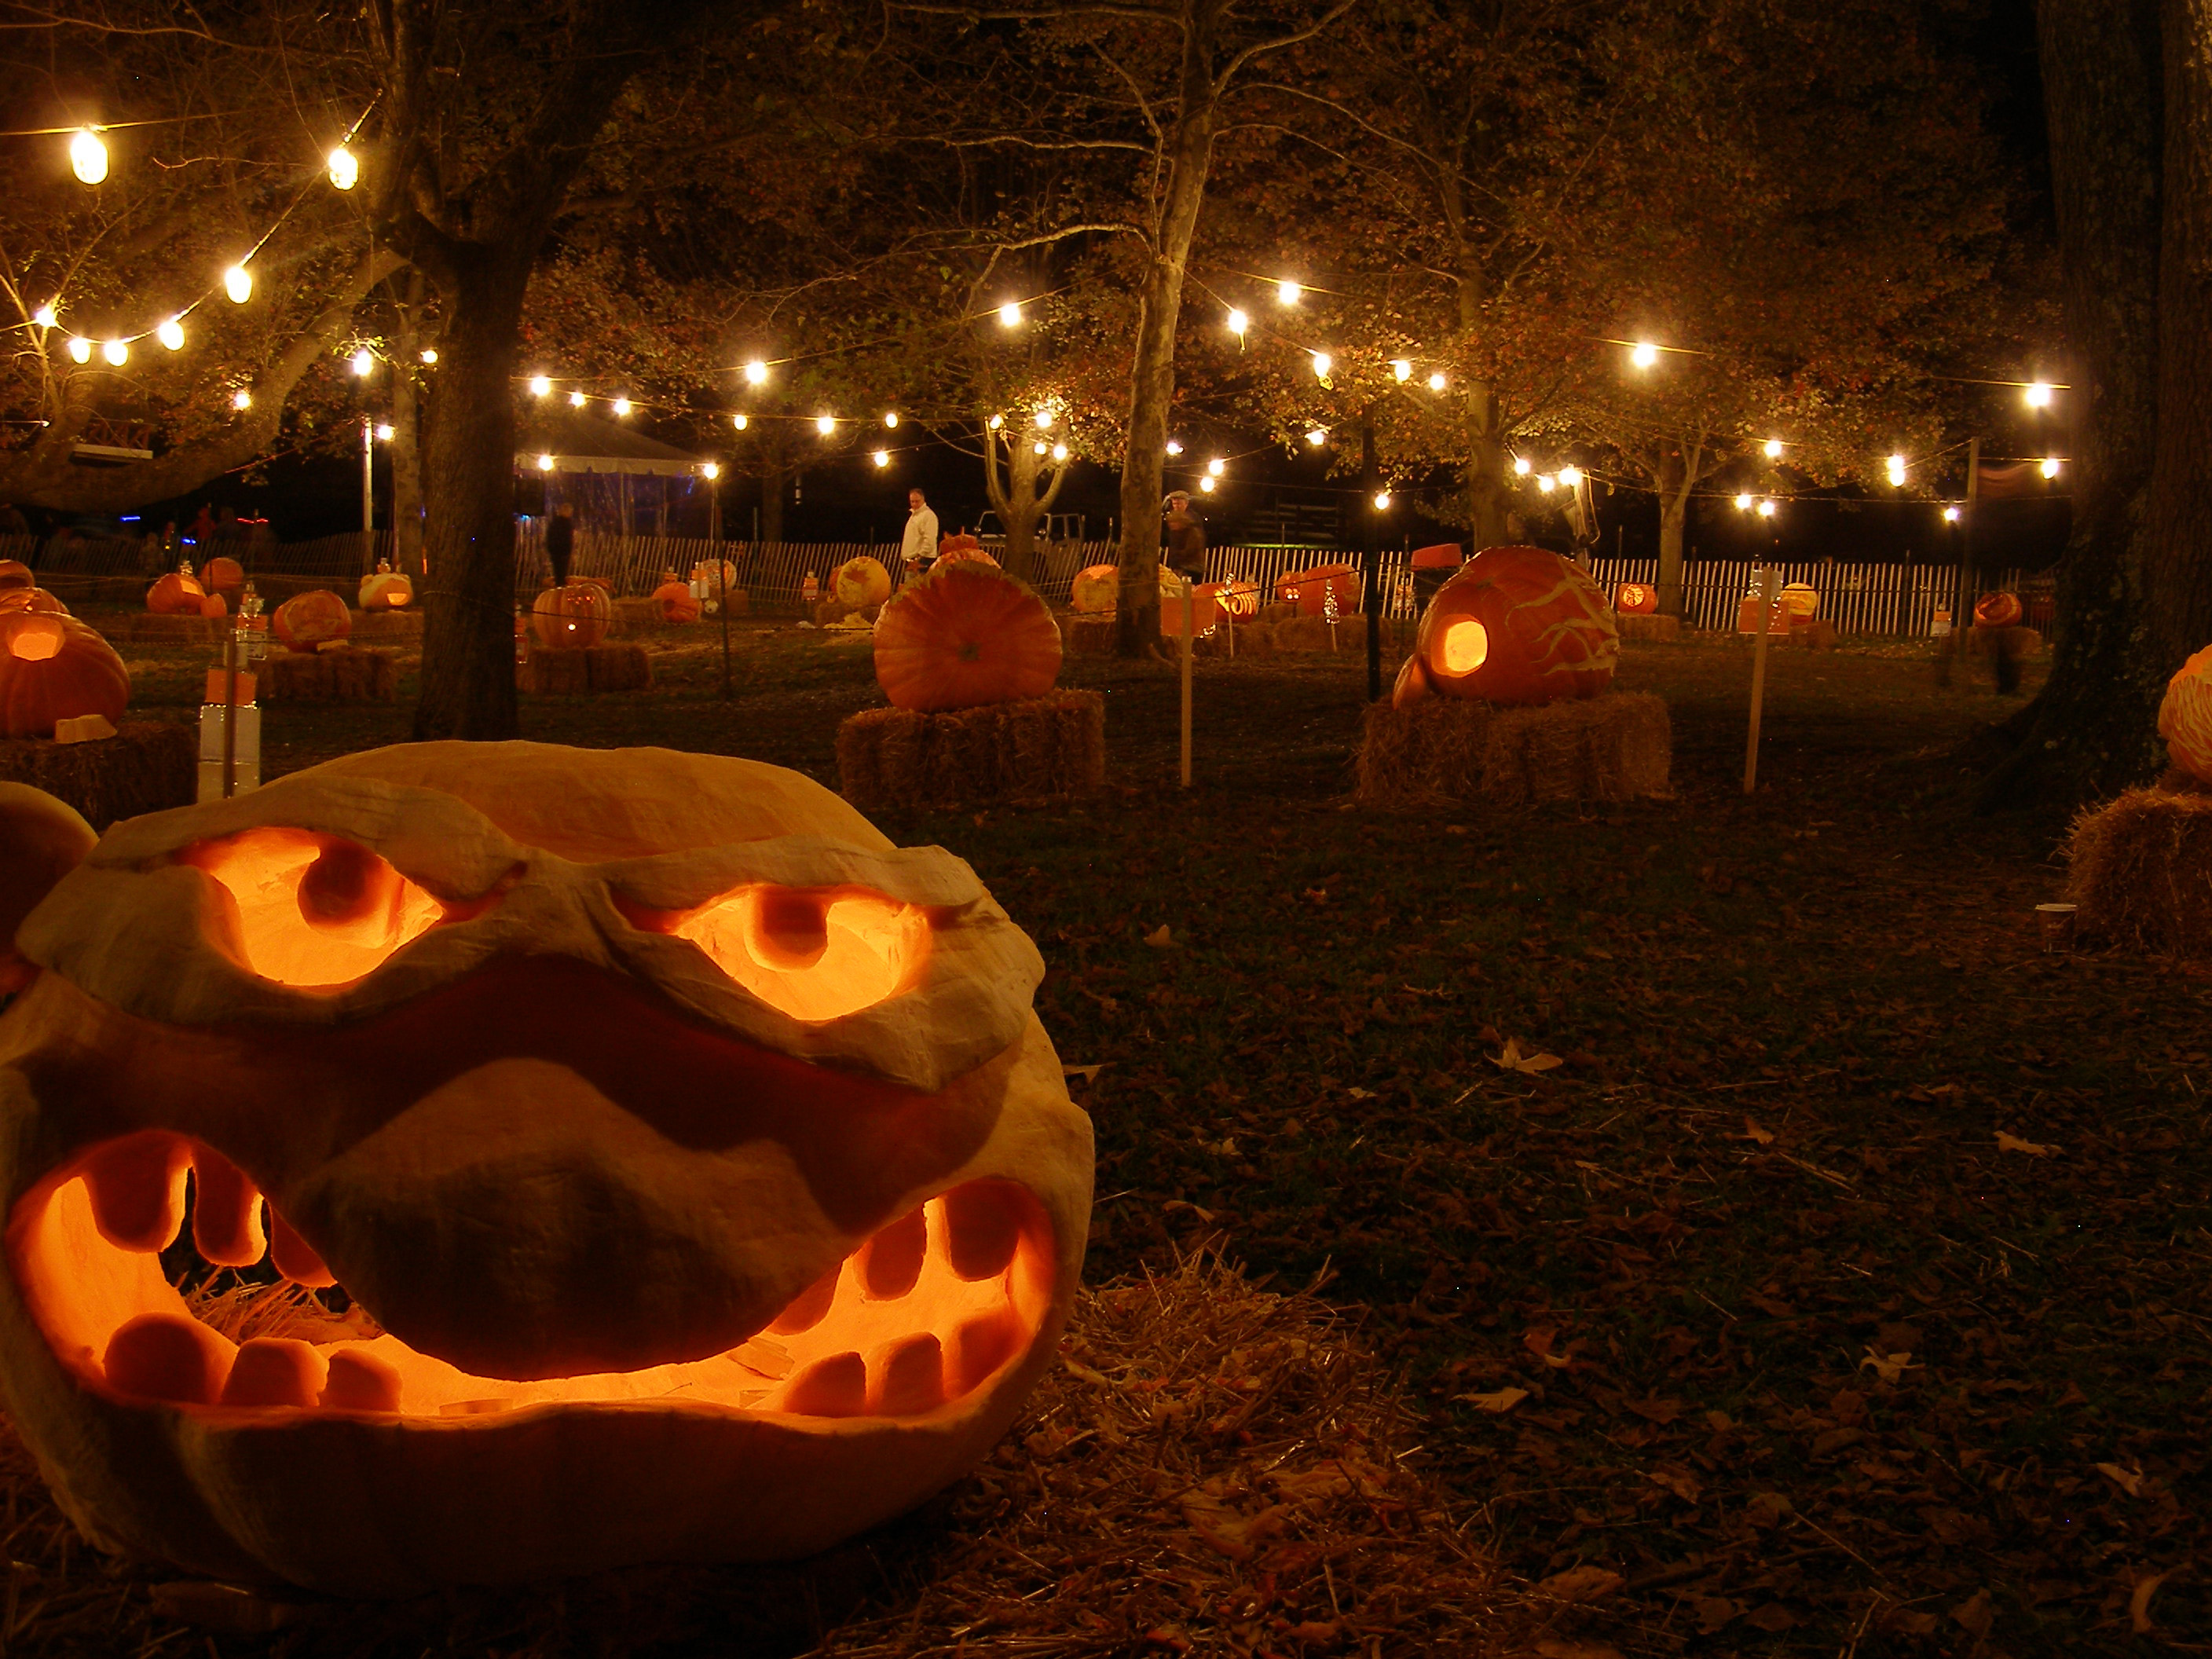 Chadds Ford Historical Society's Annual Great Pumpkin Carve Kicks Off Today